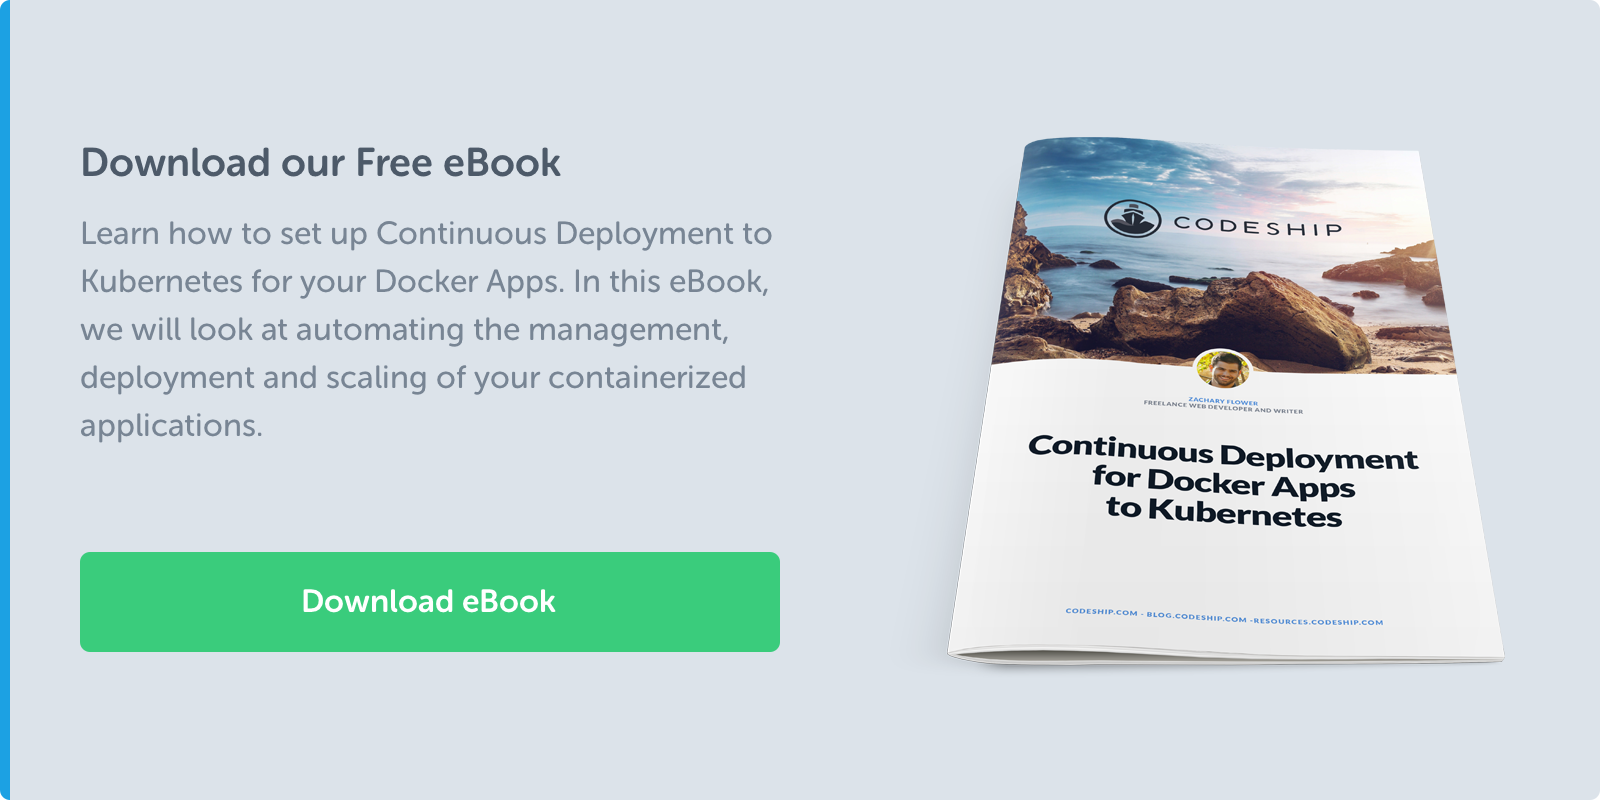 eBook_CD_docker_apps_kubernetes